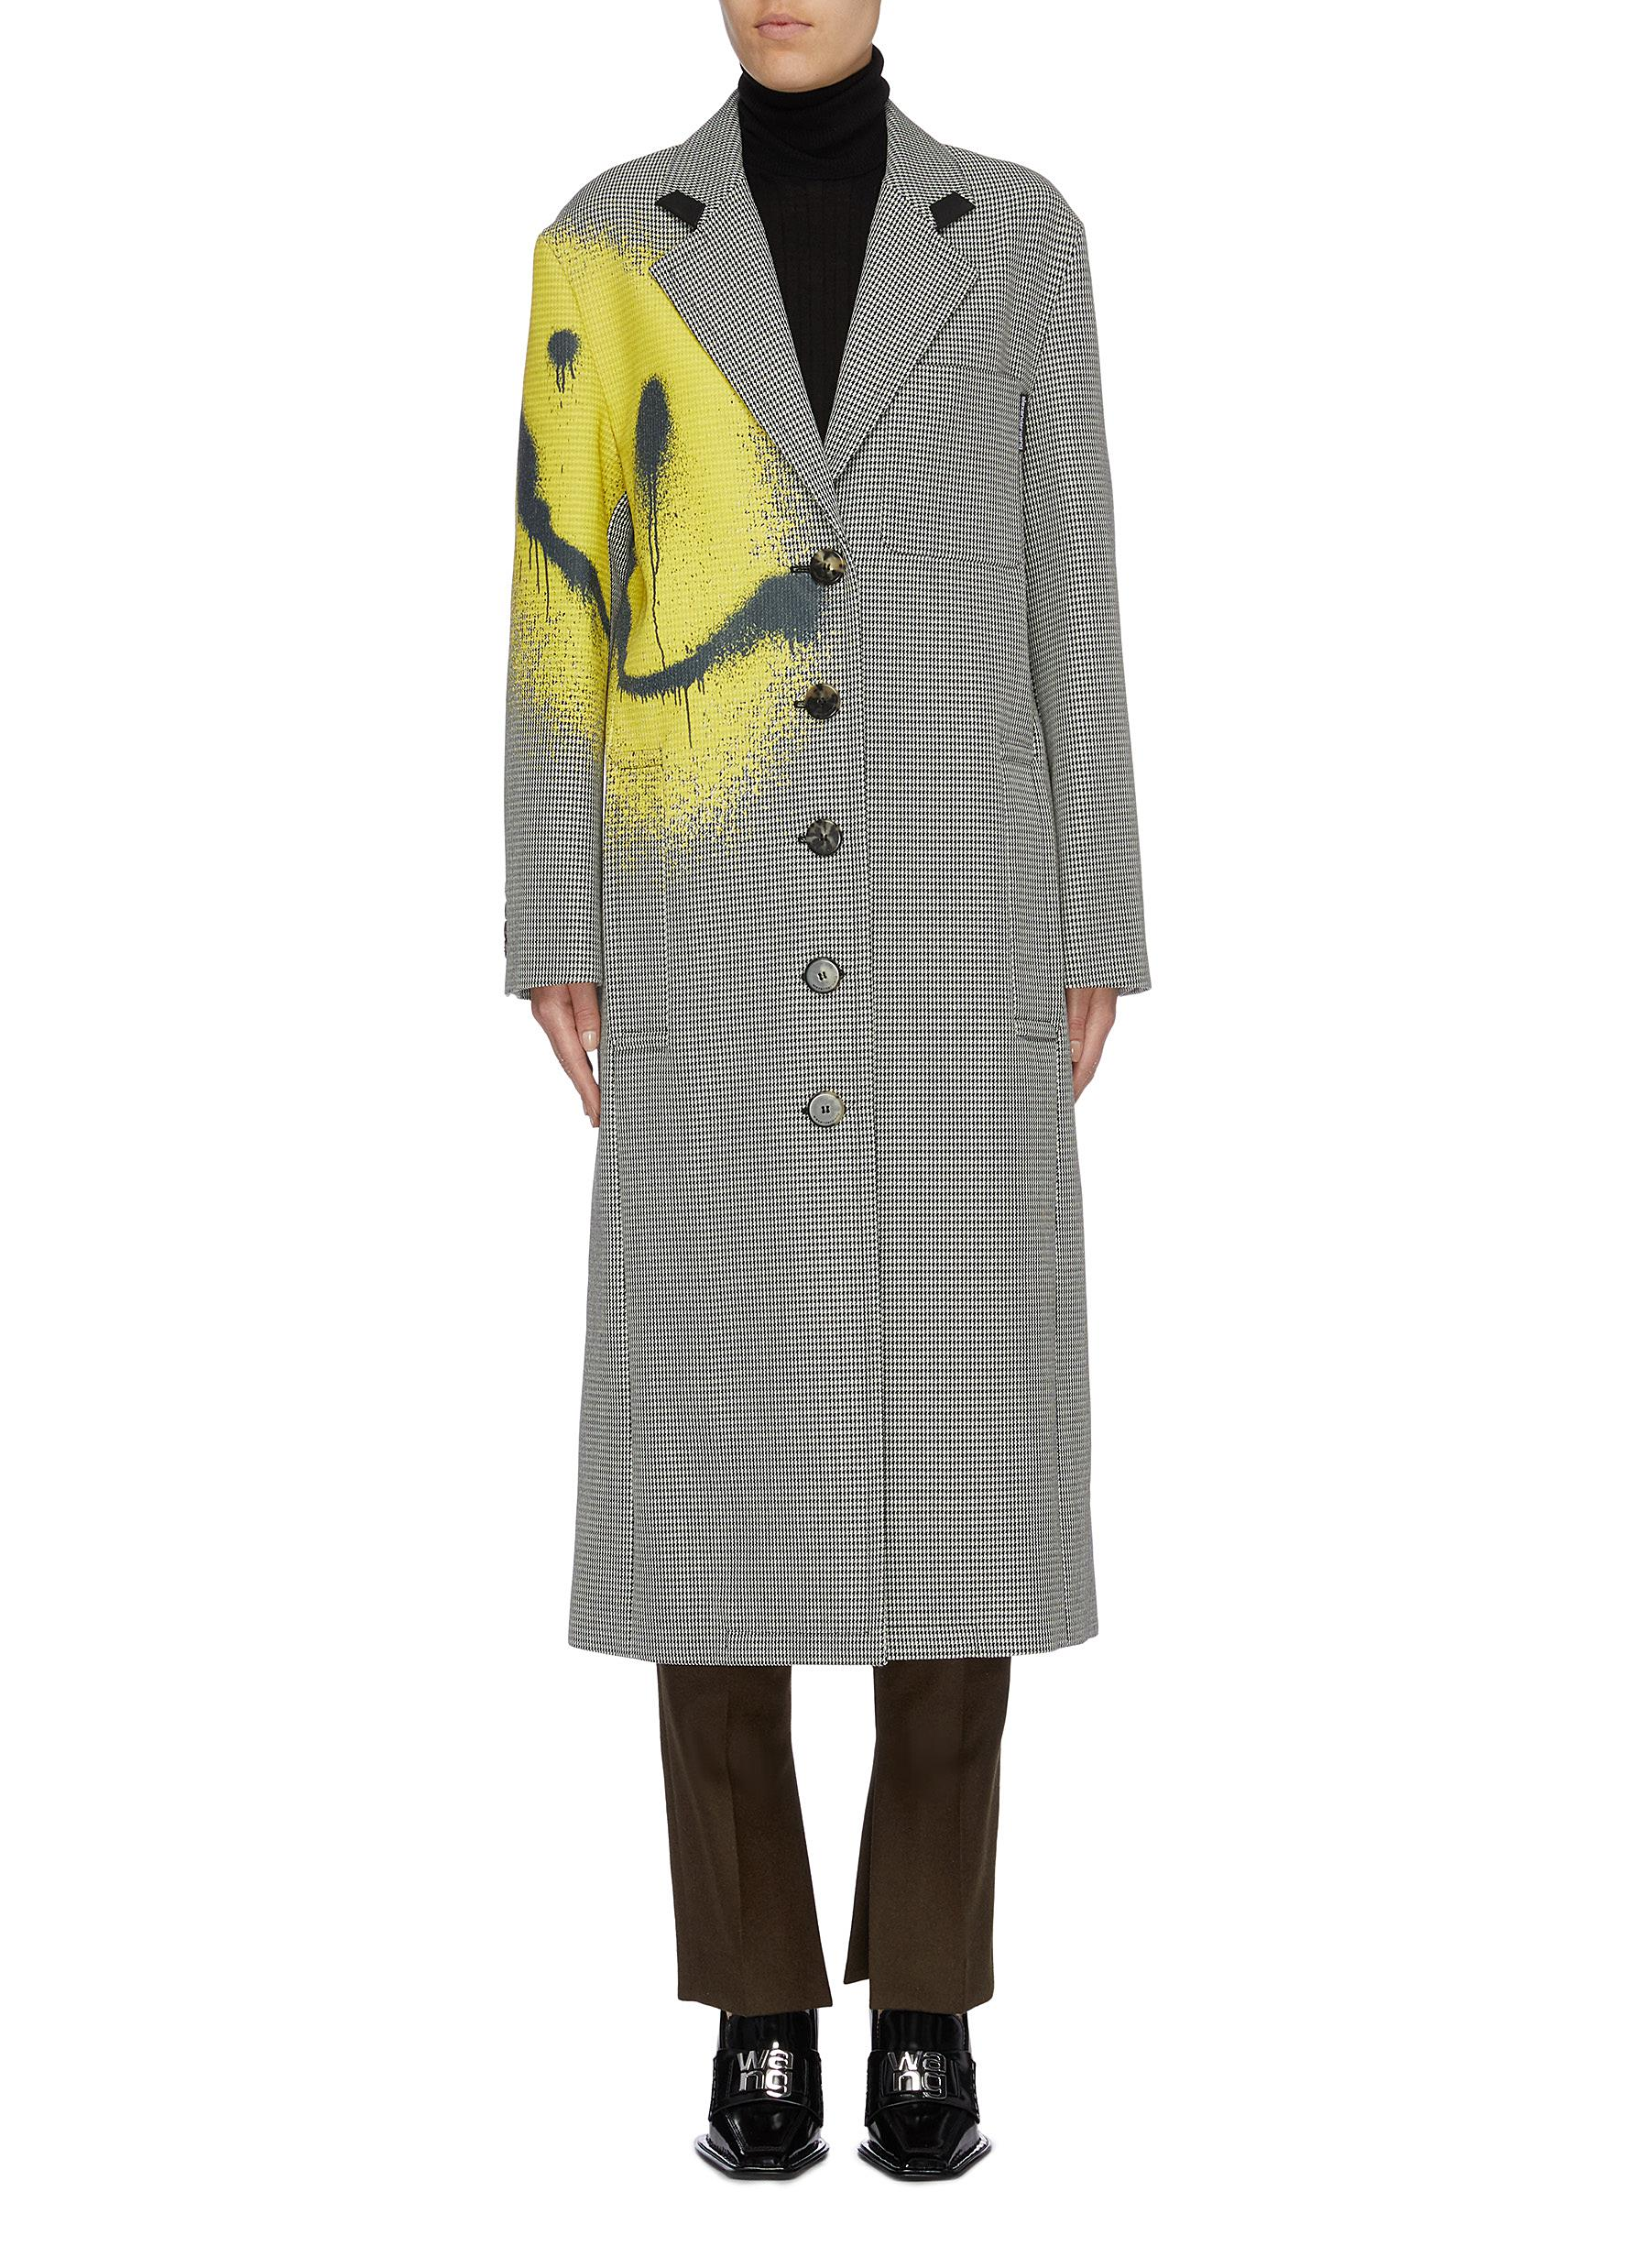 Smiley face print oversized houndstooth coat by Alexanderwang